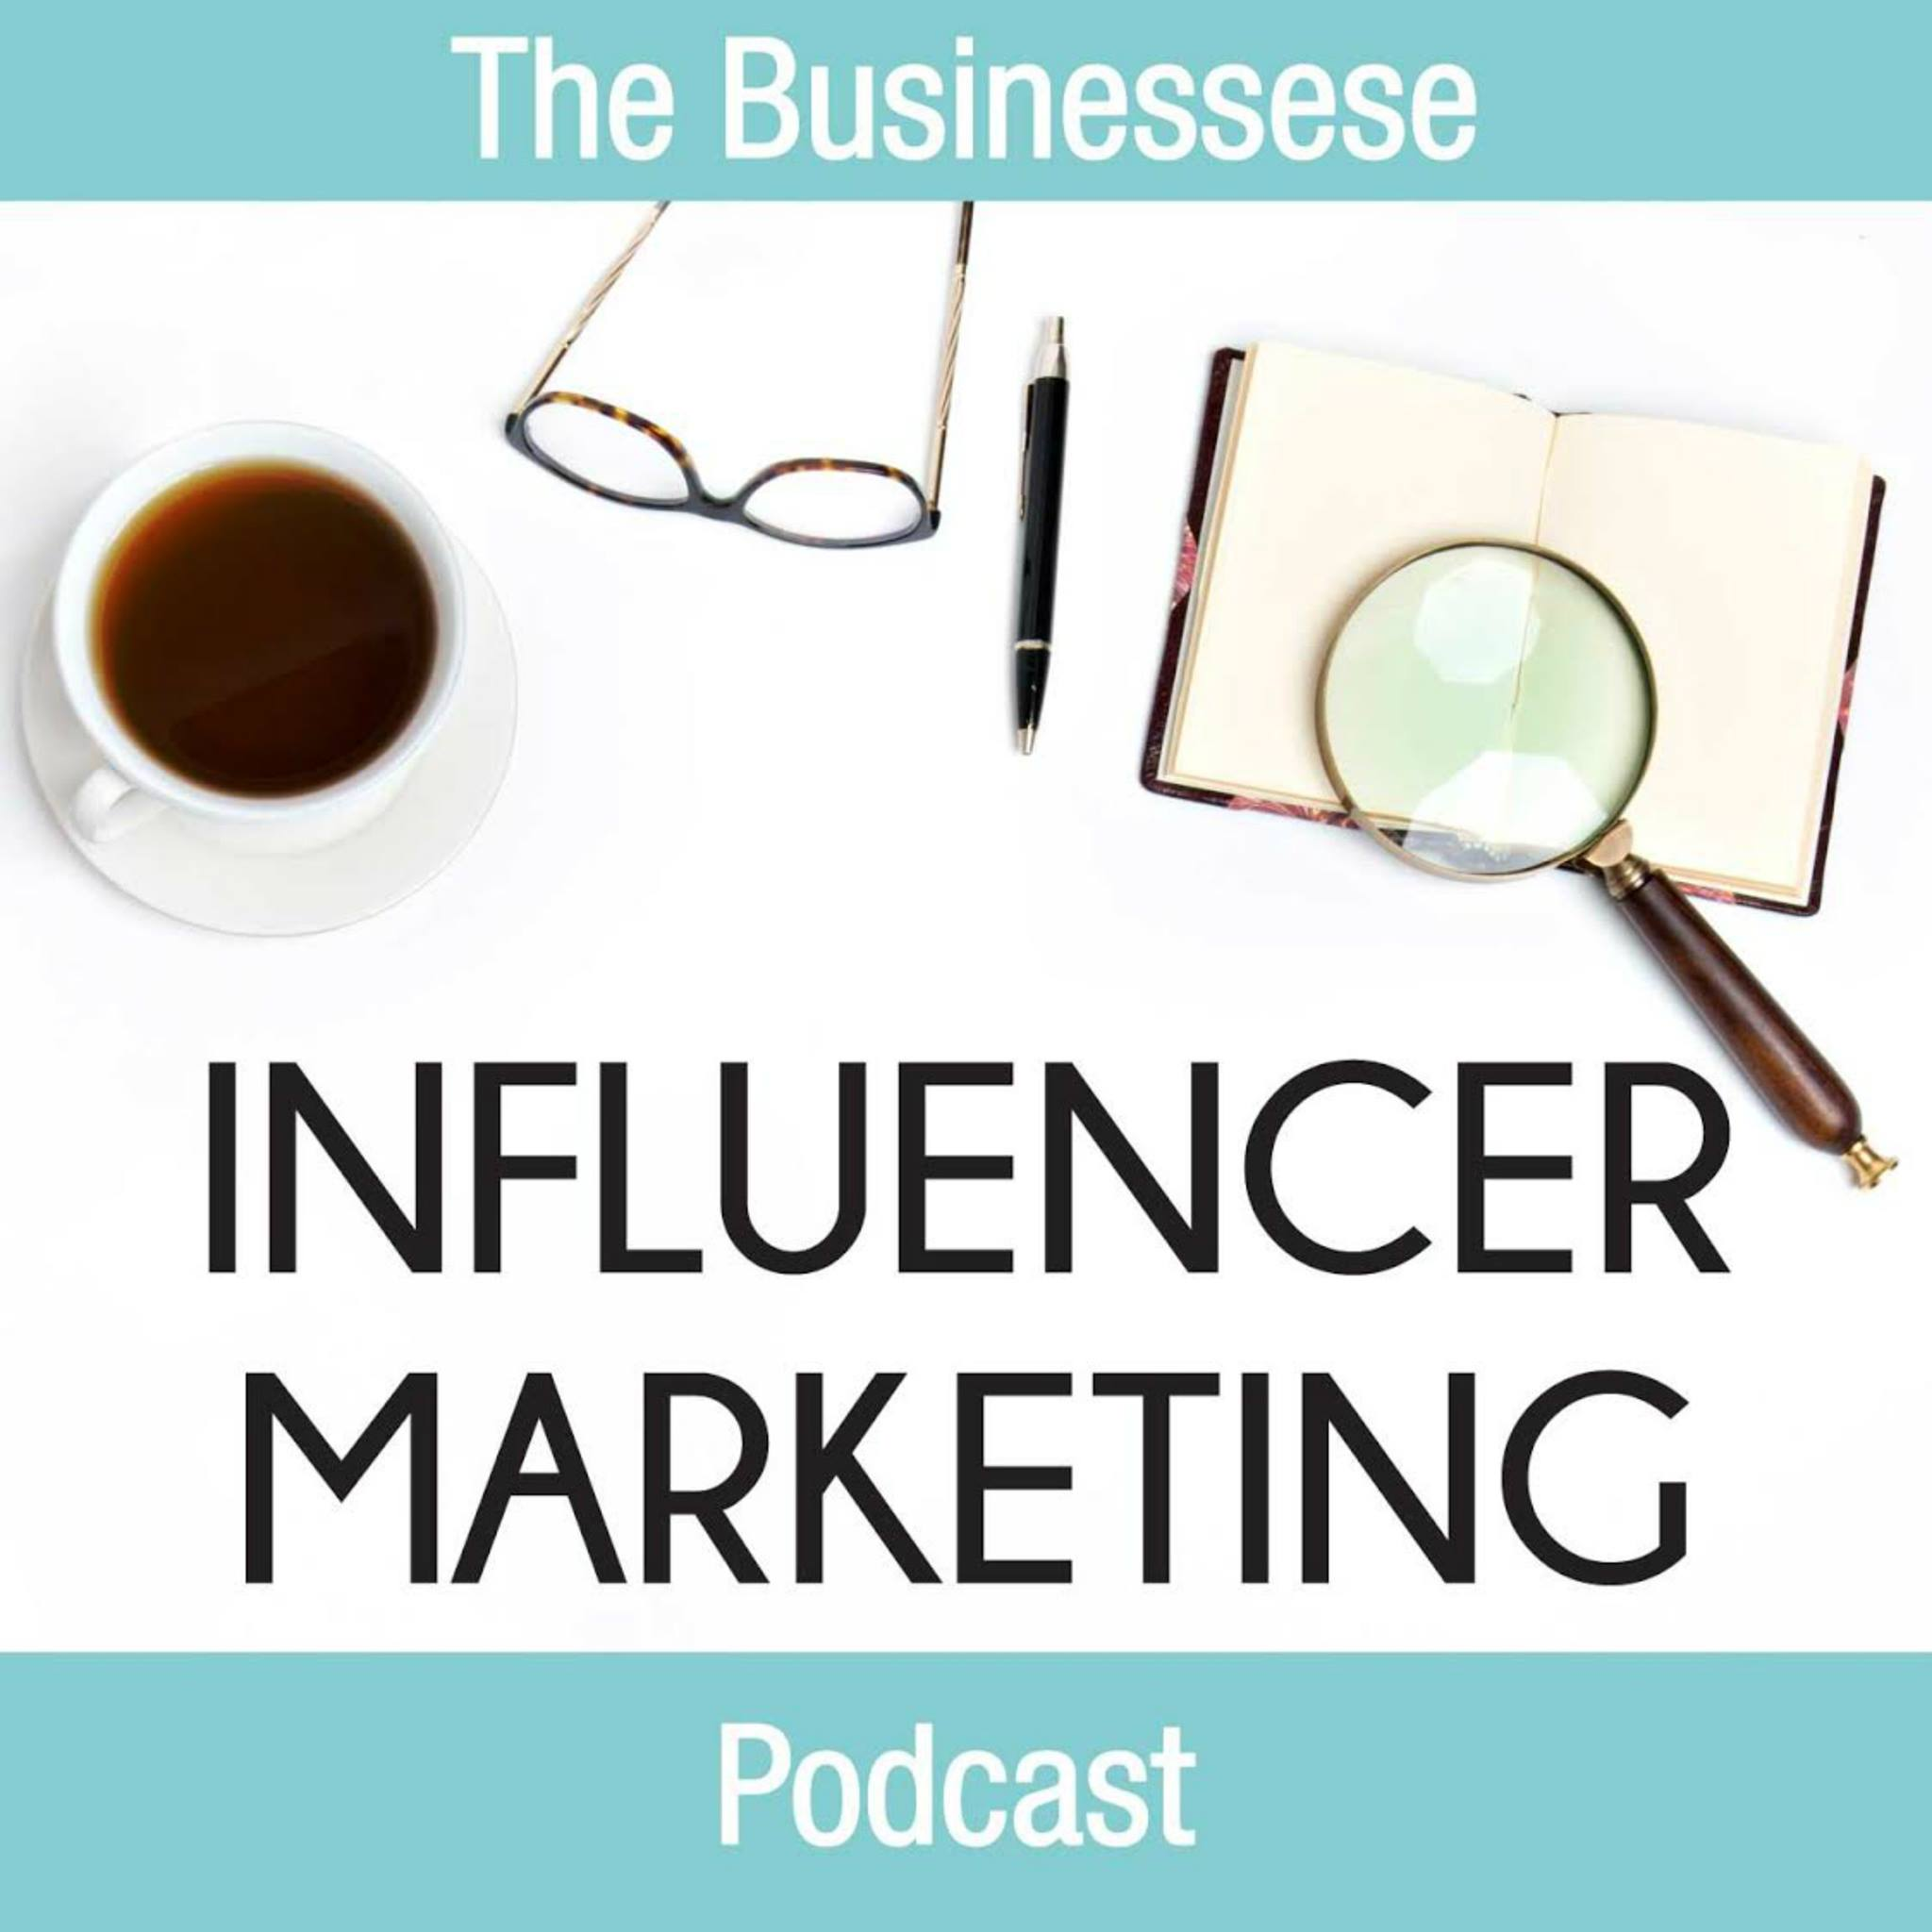 The Businessese Influencer Marketing Podcast